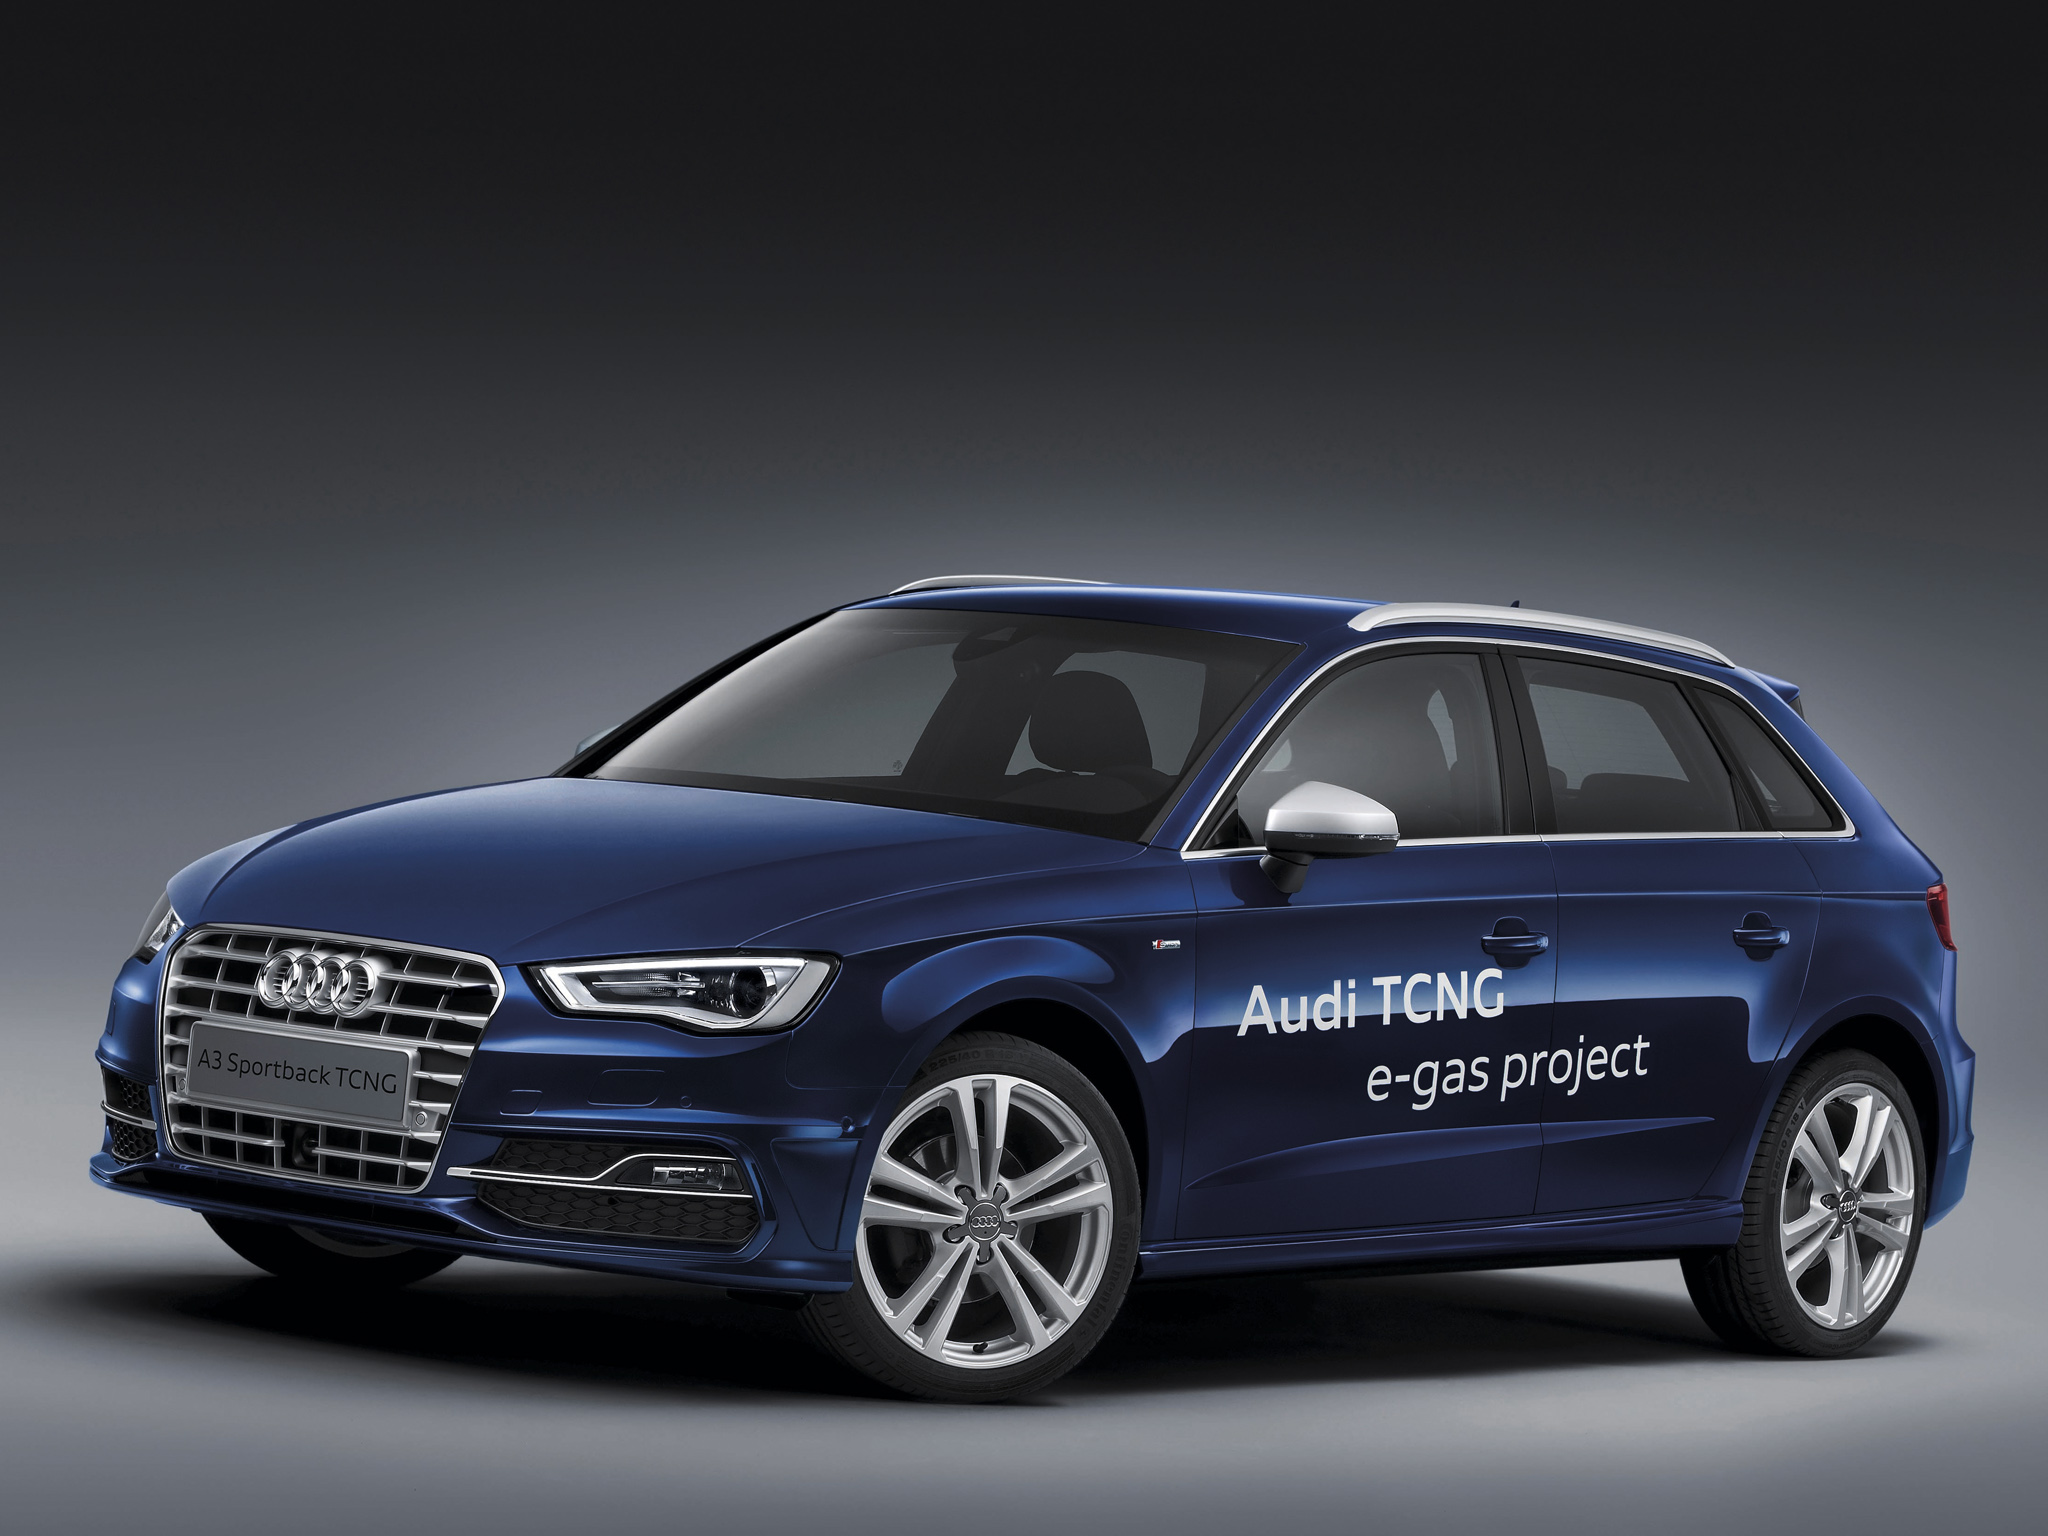 Audi A3 Sportback TCNG Wallpapers Cool Cars Wallpaper 2048x1536